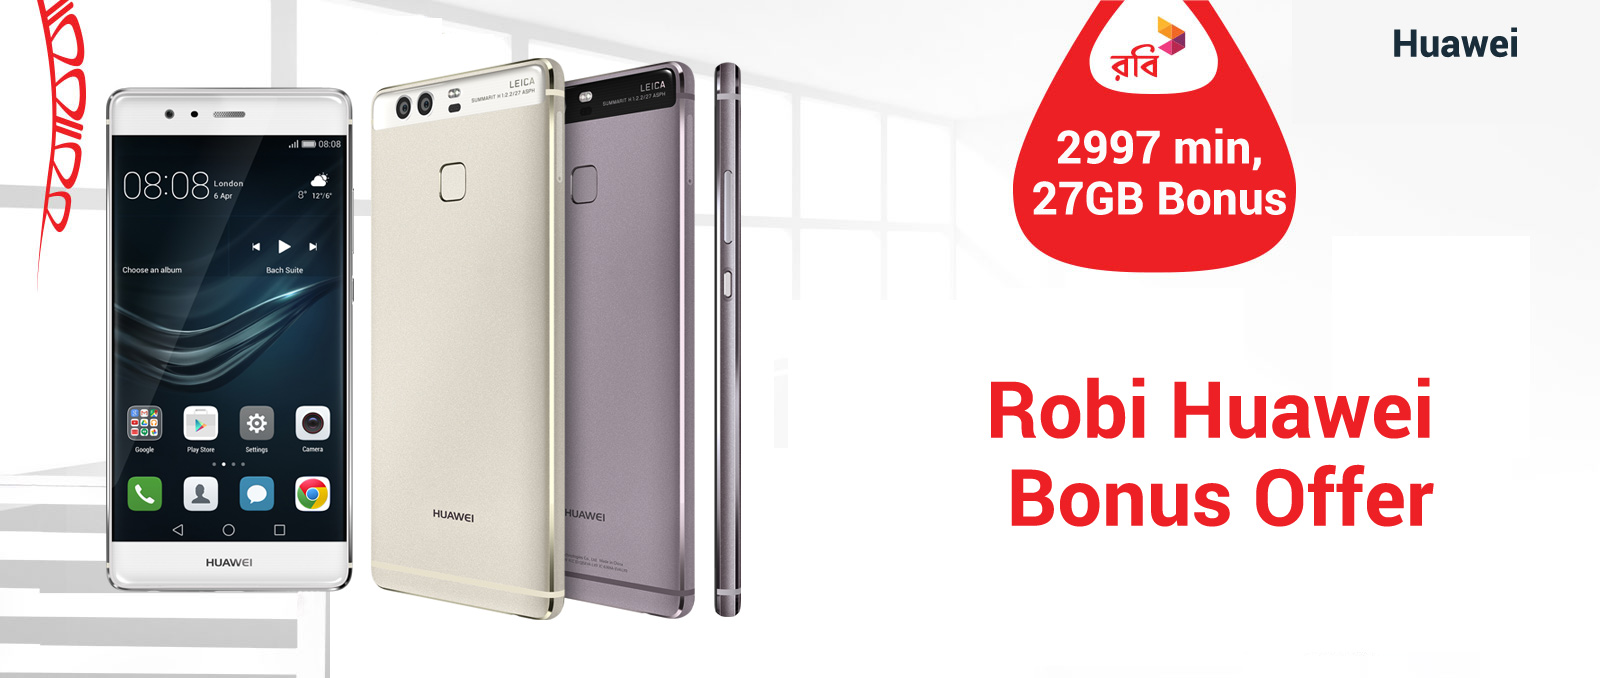 Robi Huawei P9 EID Bonus Offer 2016 Get free 27GB 3g internet